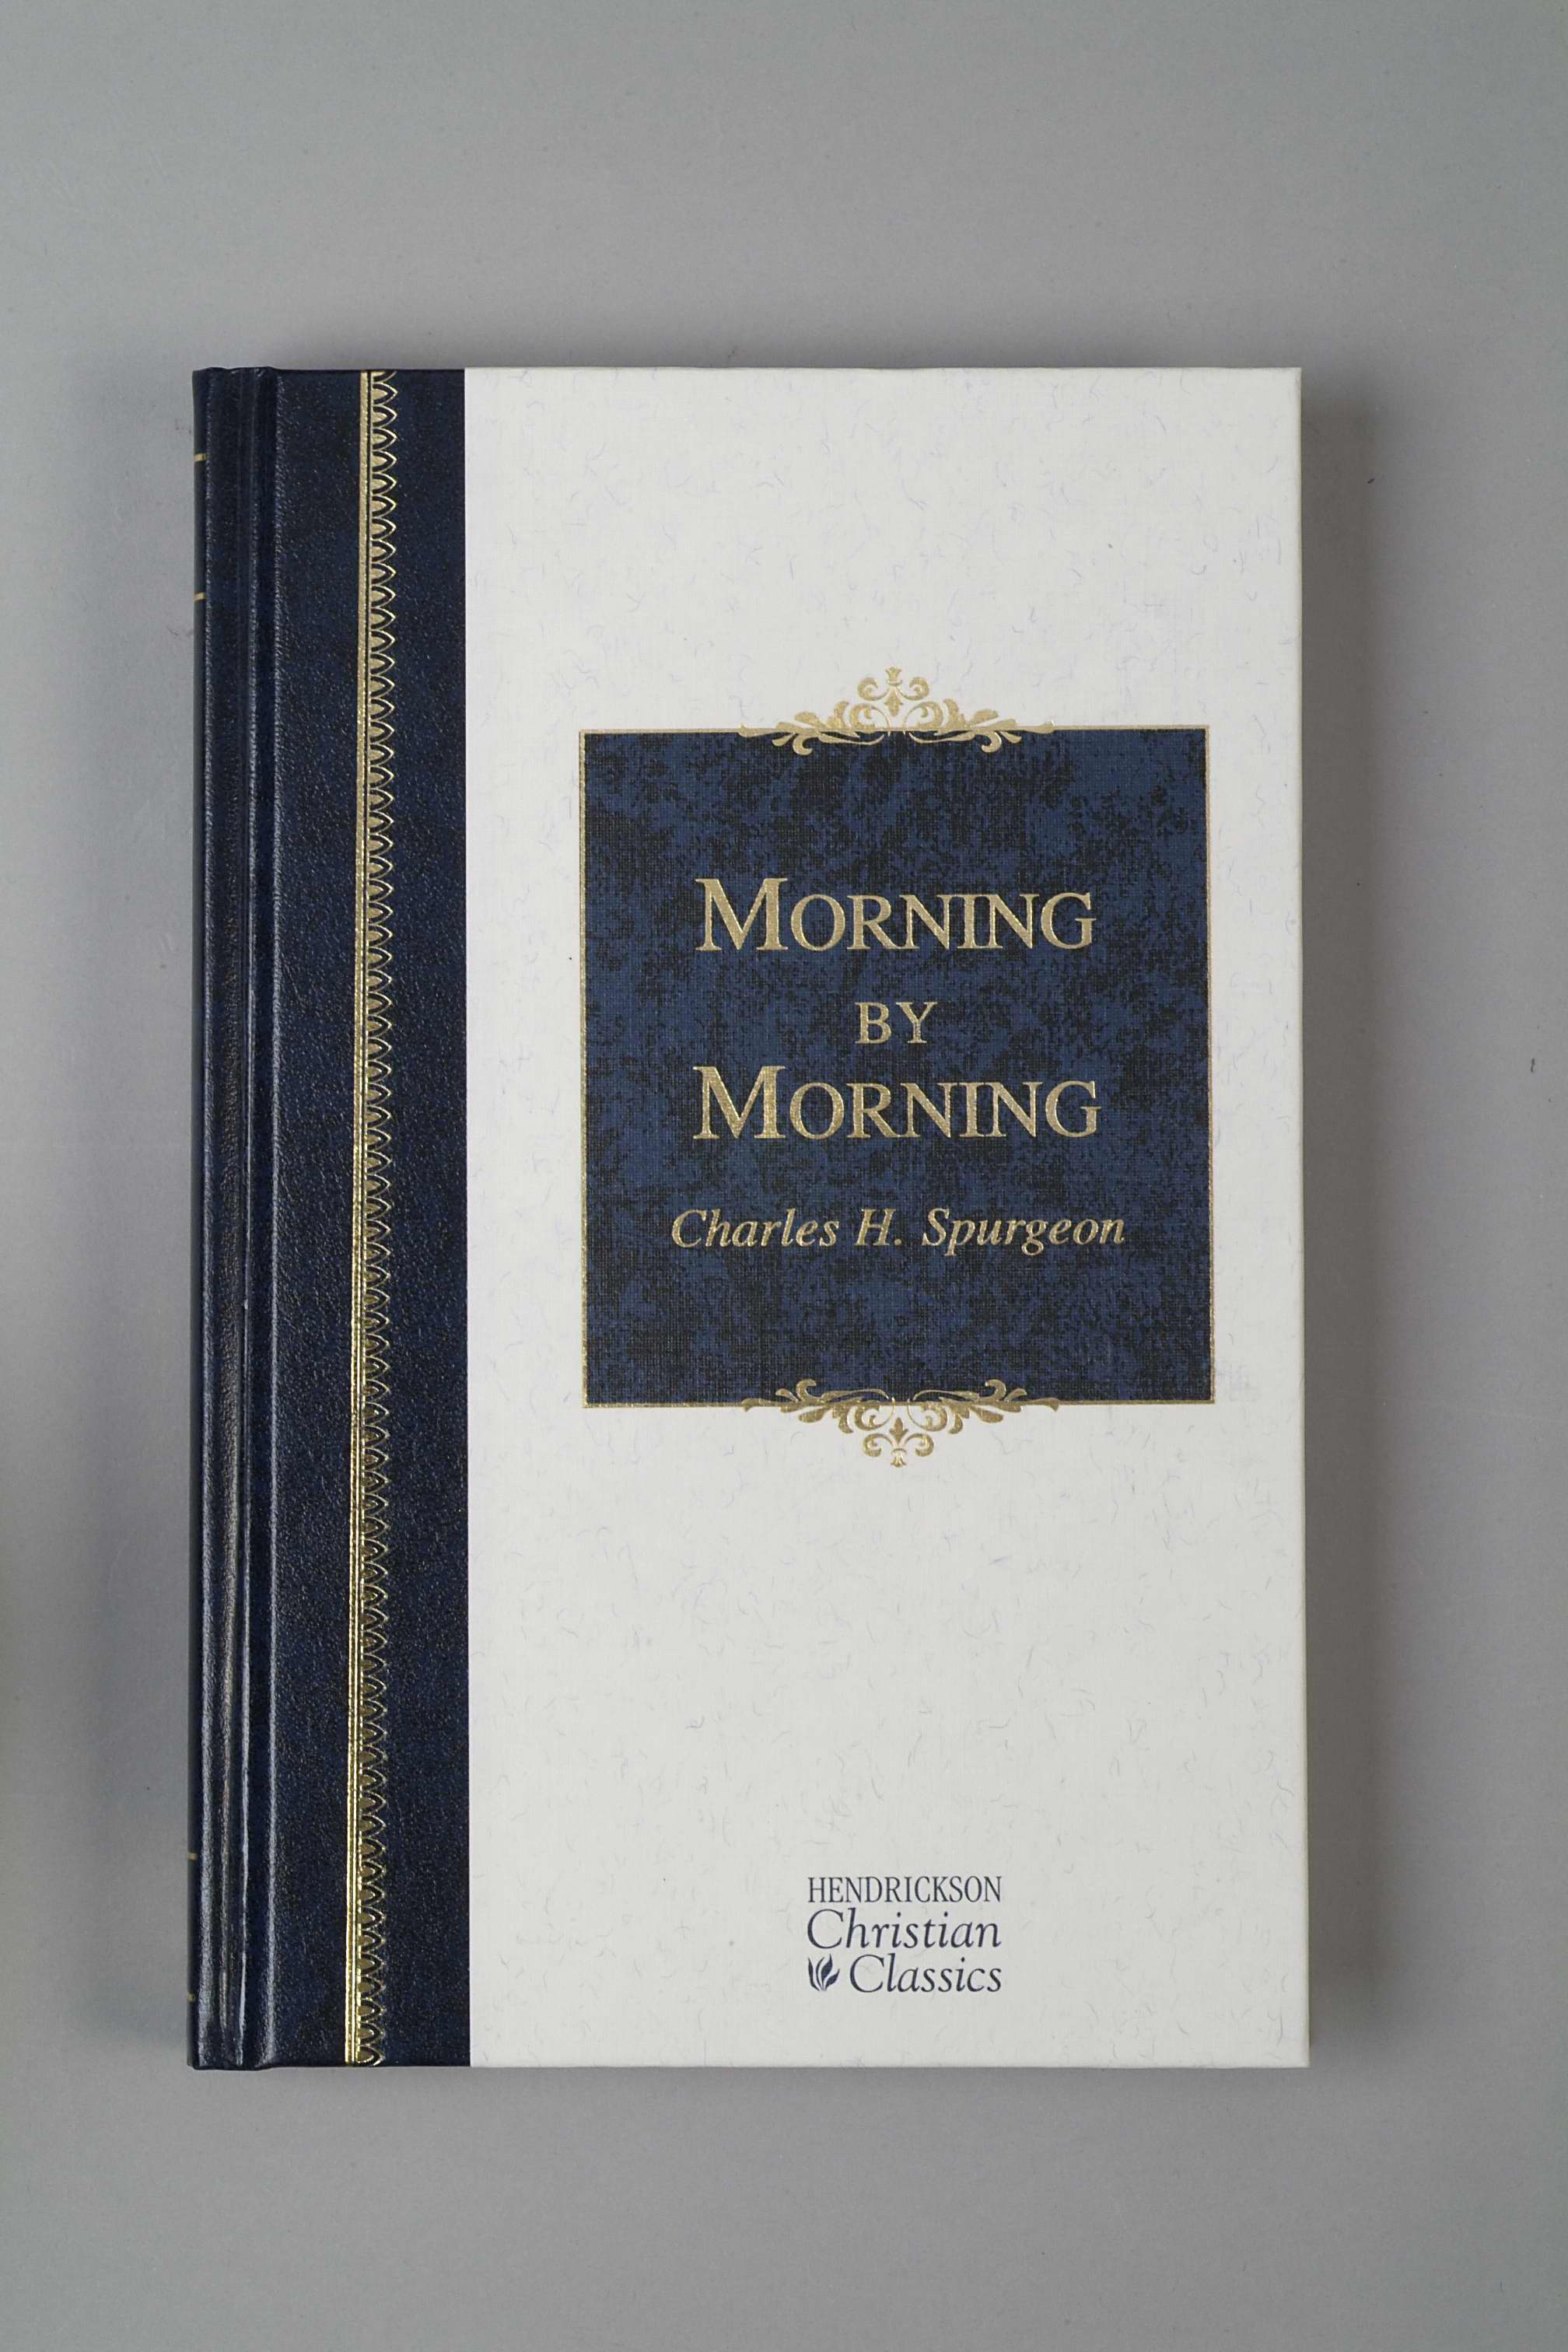 Morning By Morning (Hendrickson Christian Classics)